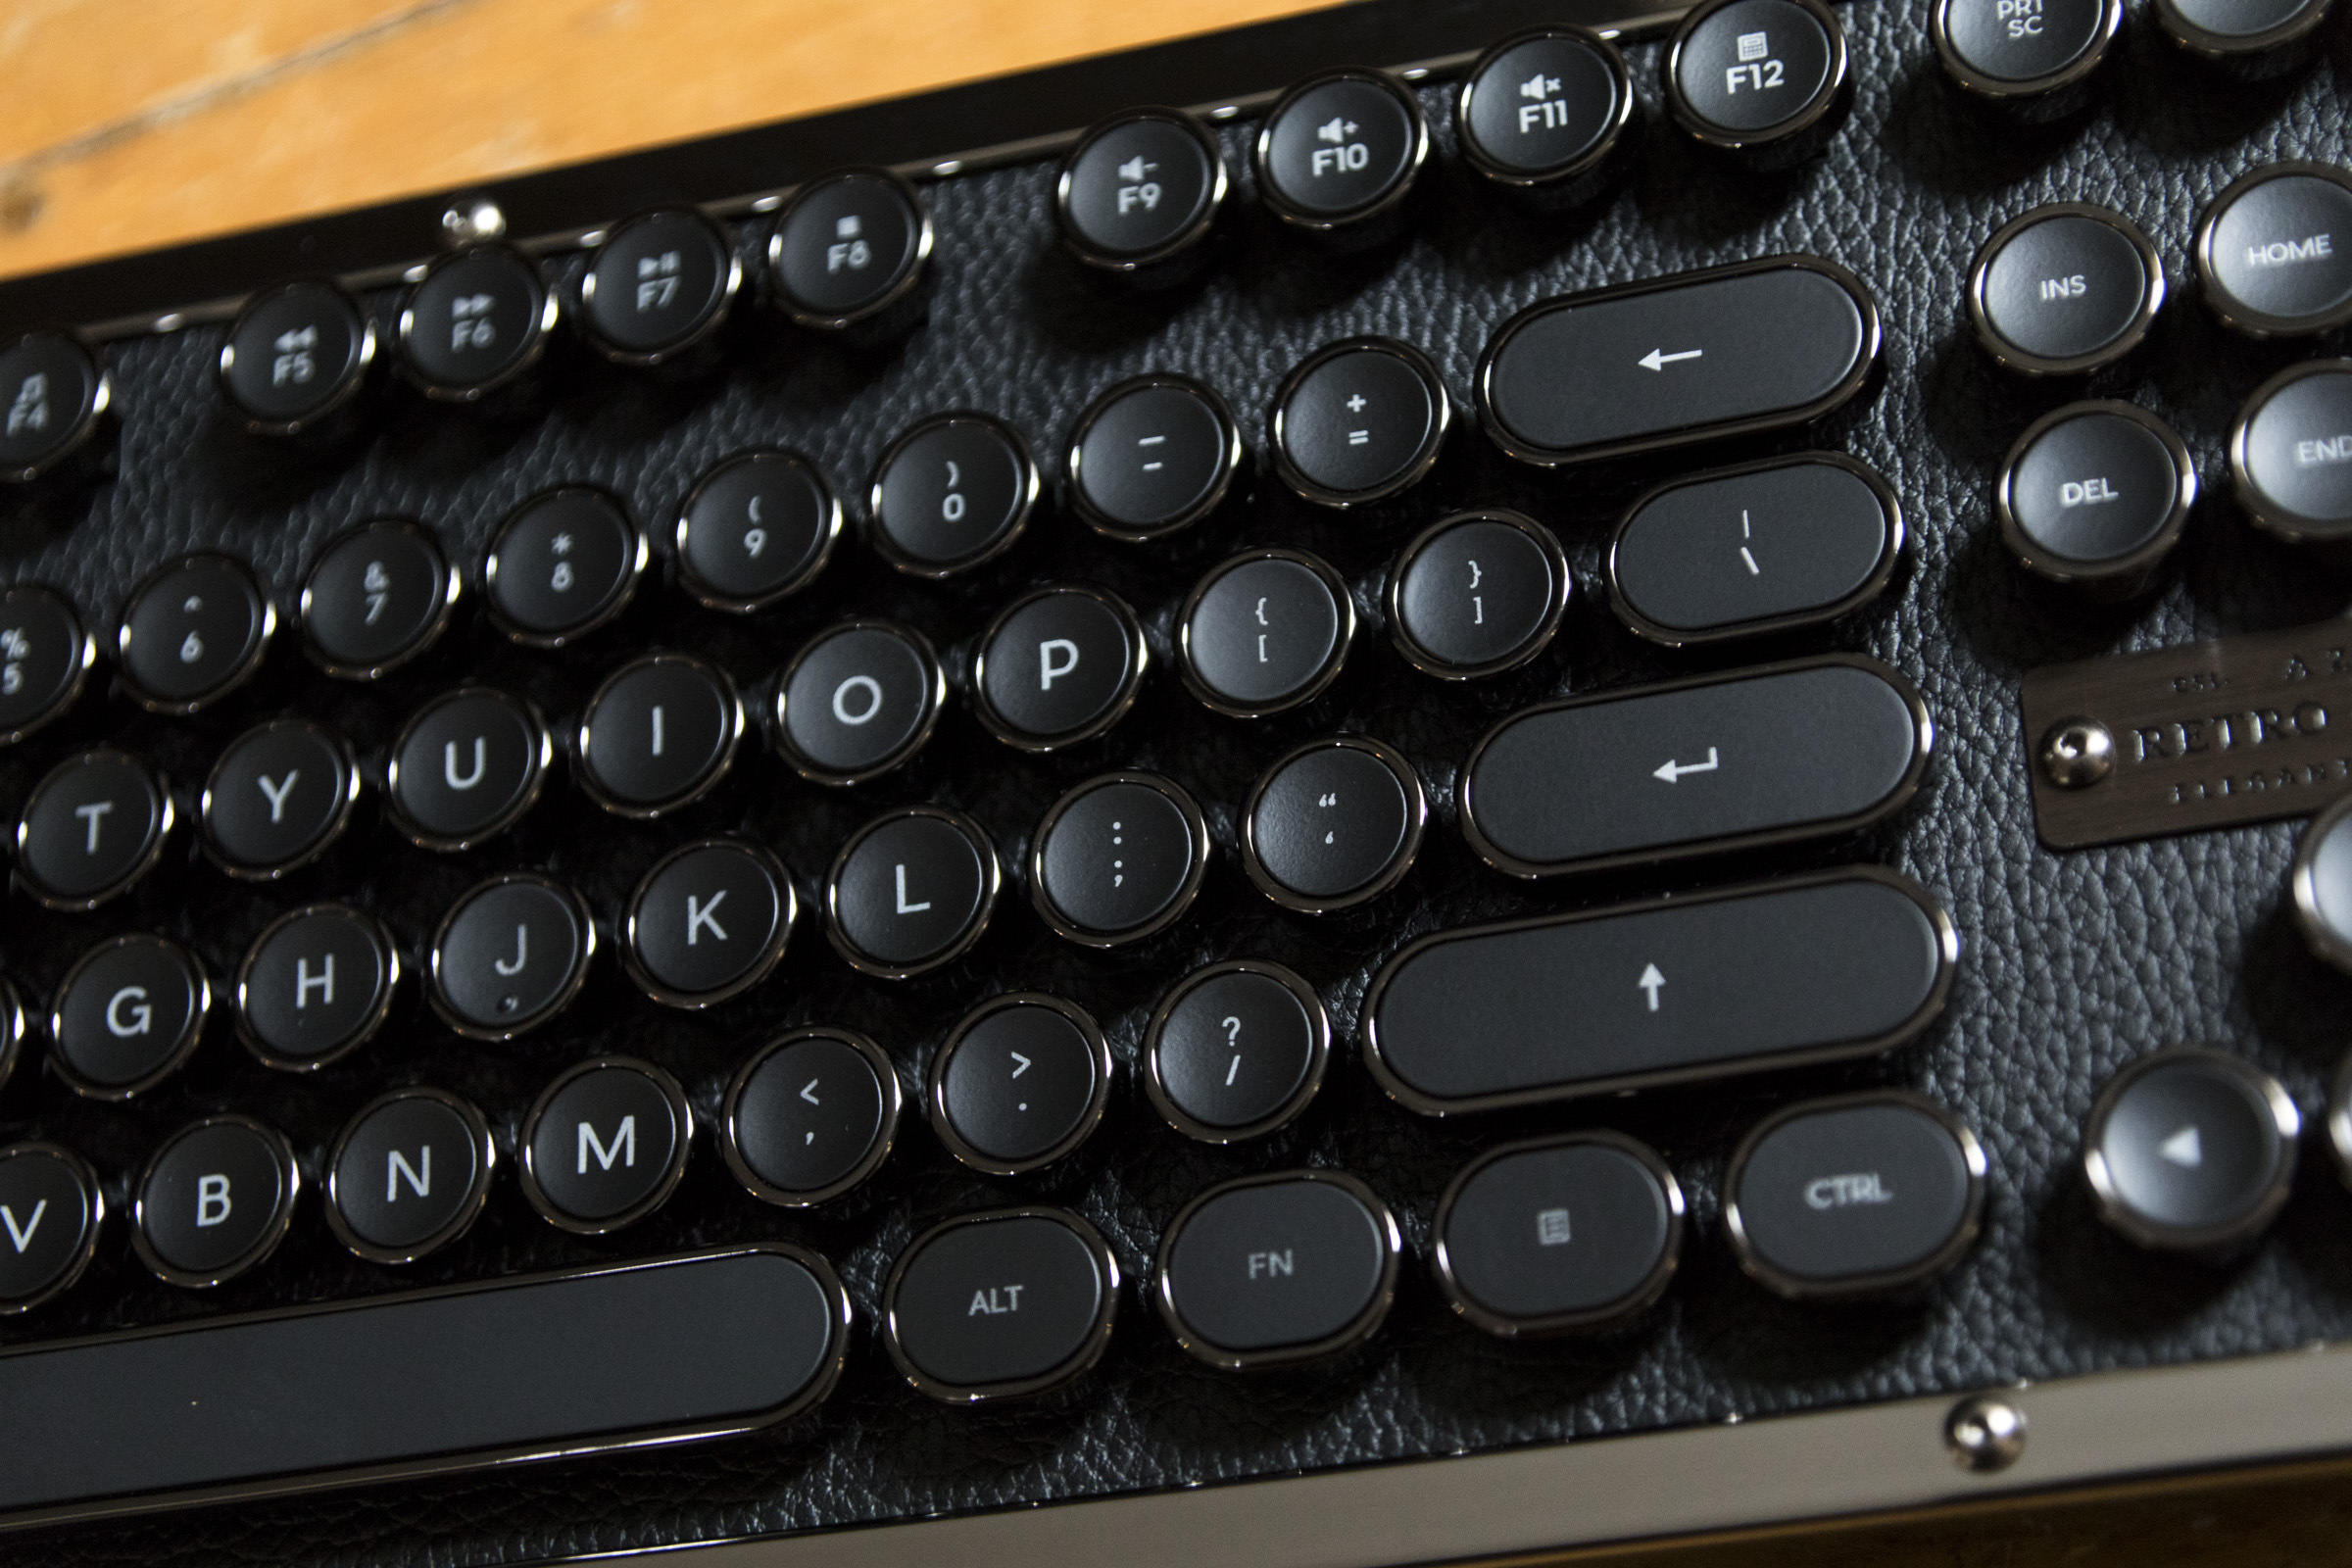 1518209330 183 the retro classic azio bluetooth keyboard inspired by the typewriter is a luxury treat - The retro-classic Azio Bluetooth keyboard inspired by the typewriter is a luxury treat